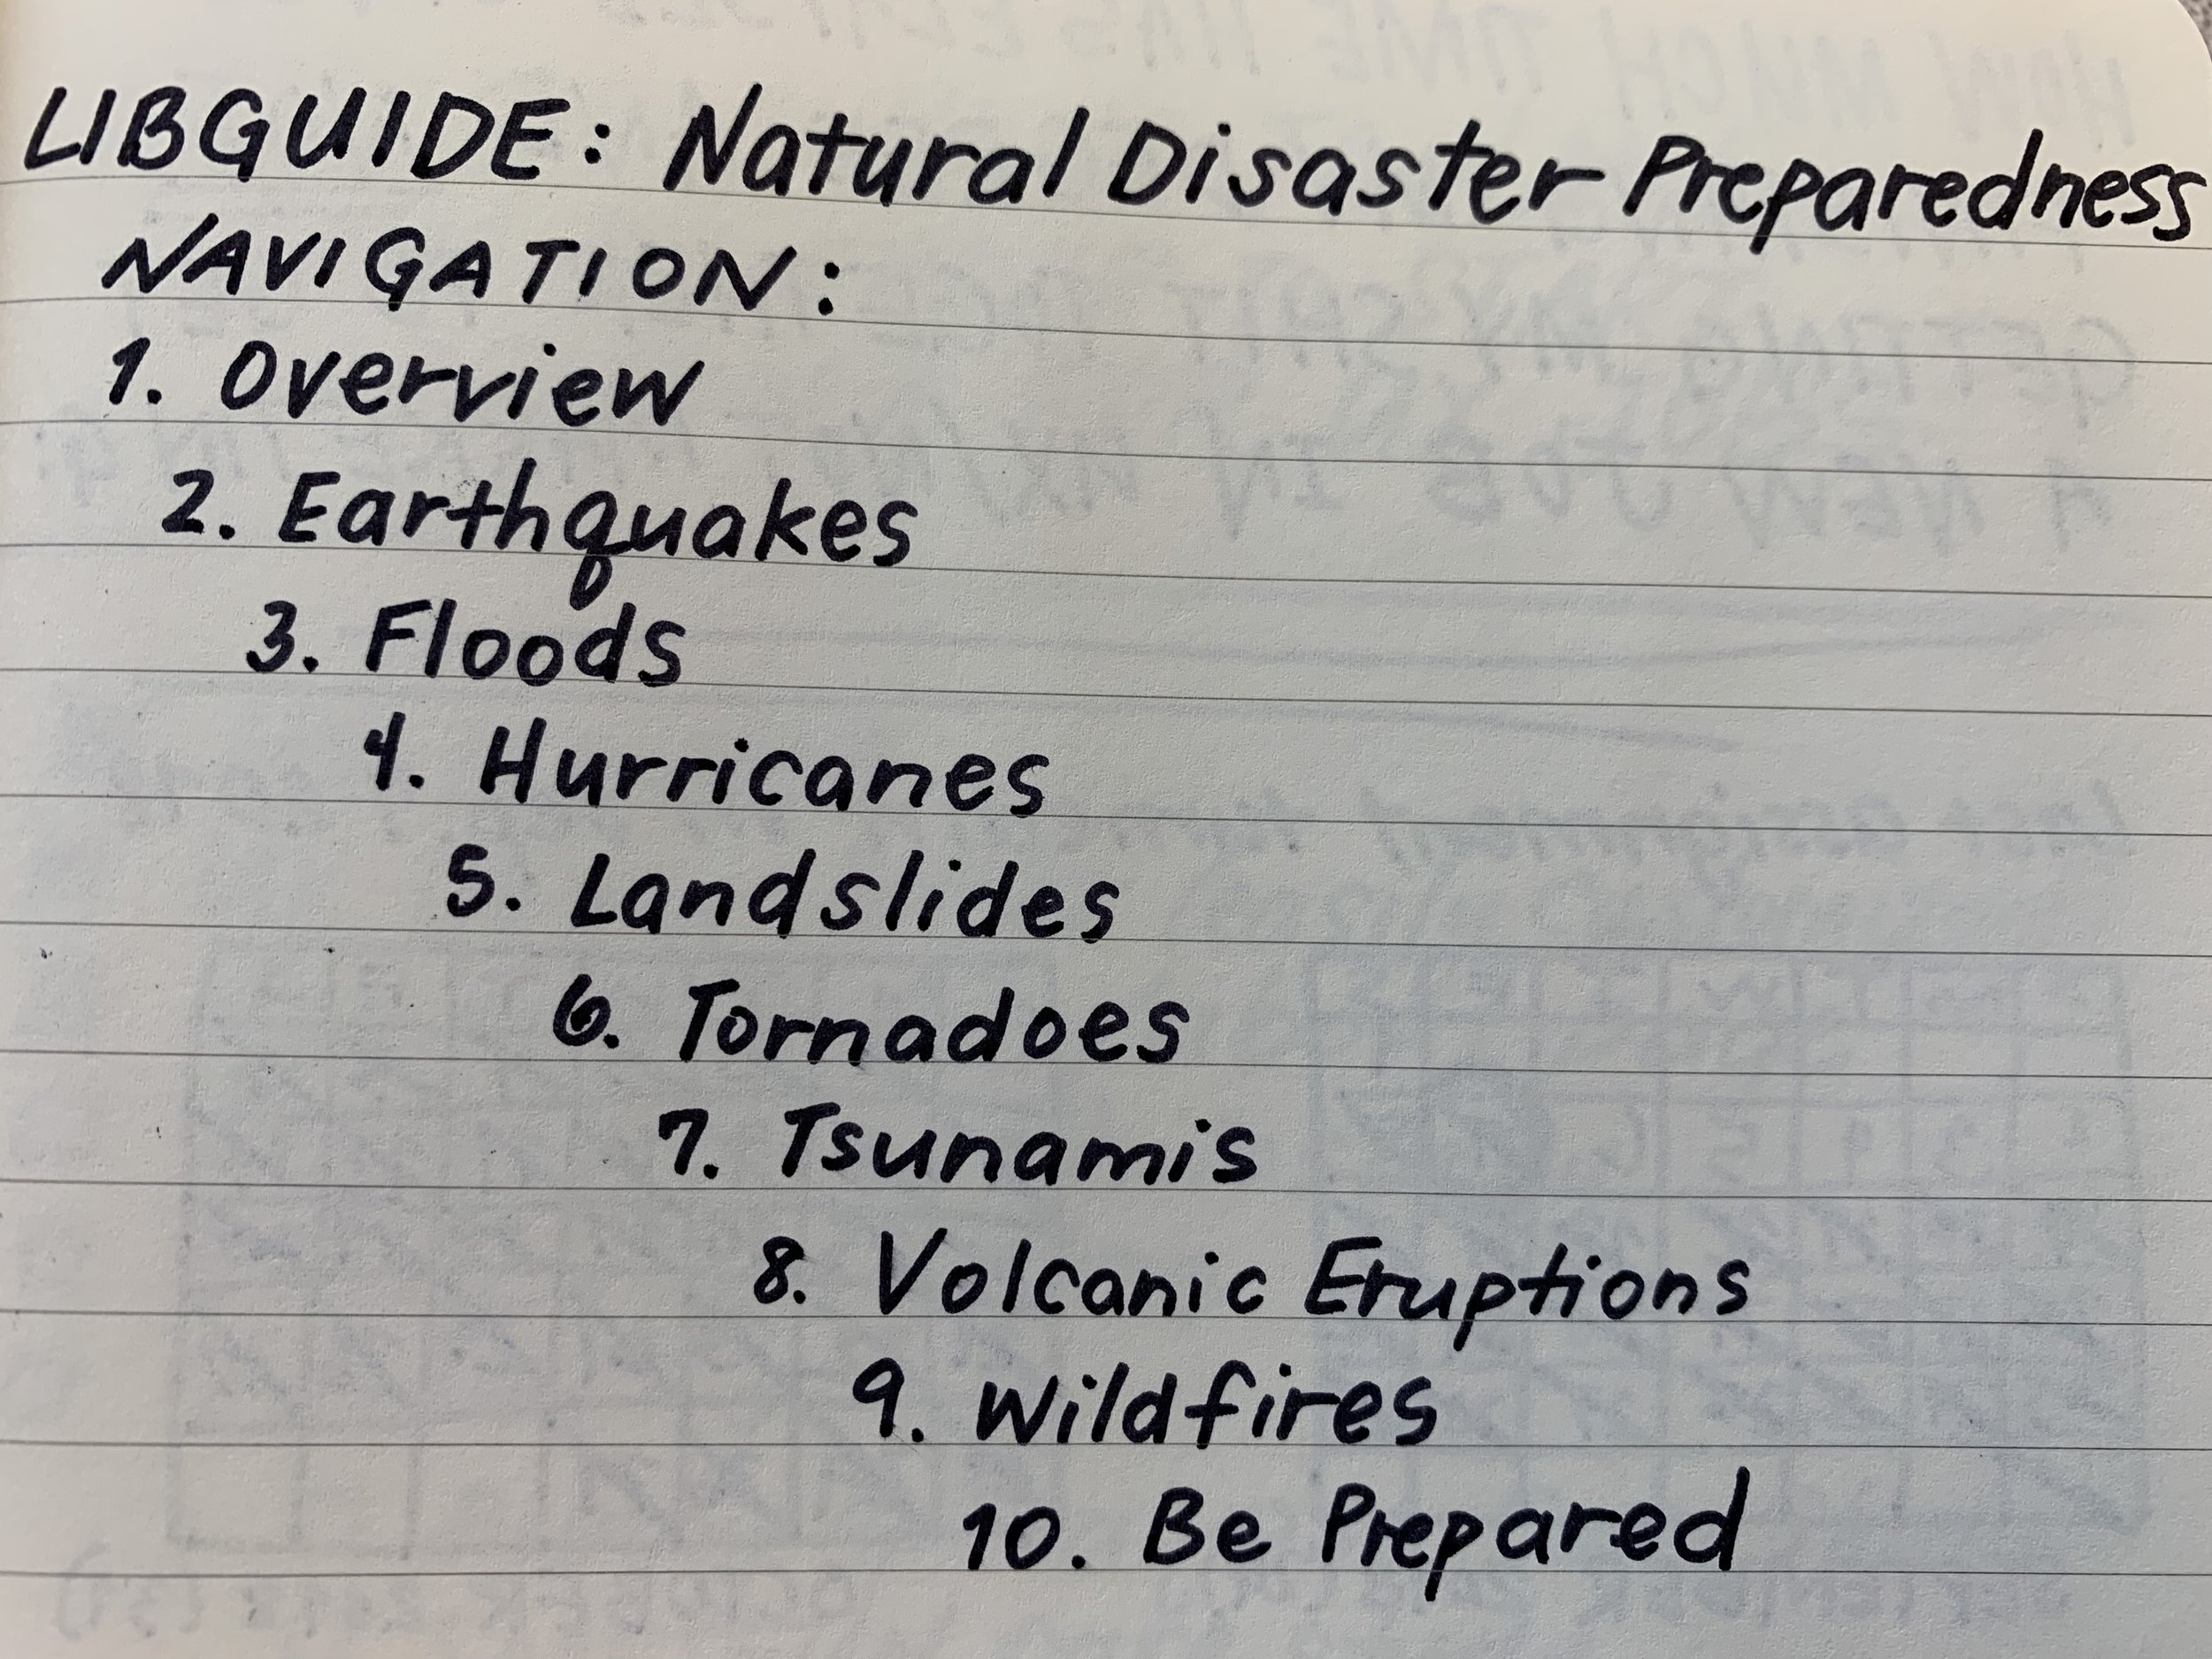 Pictured: the final list of the ten pages in the resource guide, including eight major types of natural disasters.